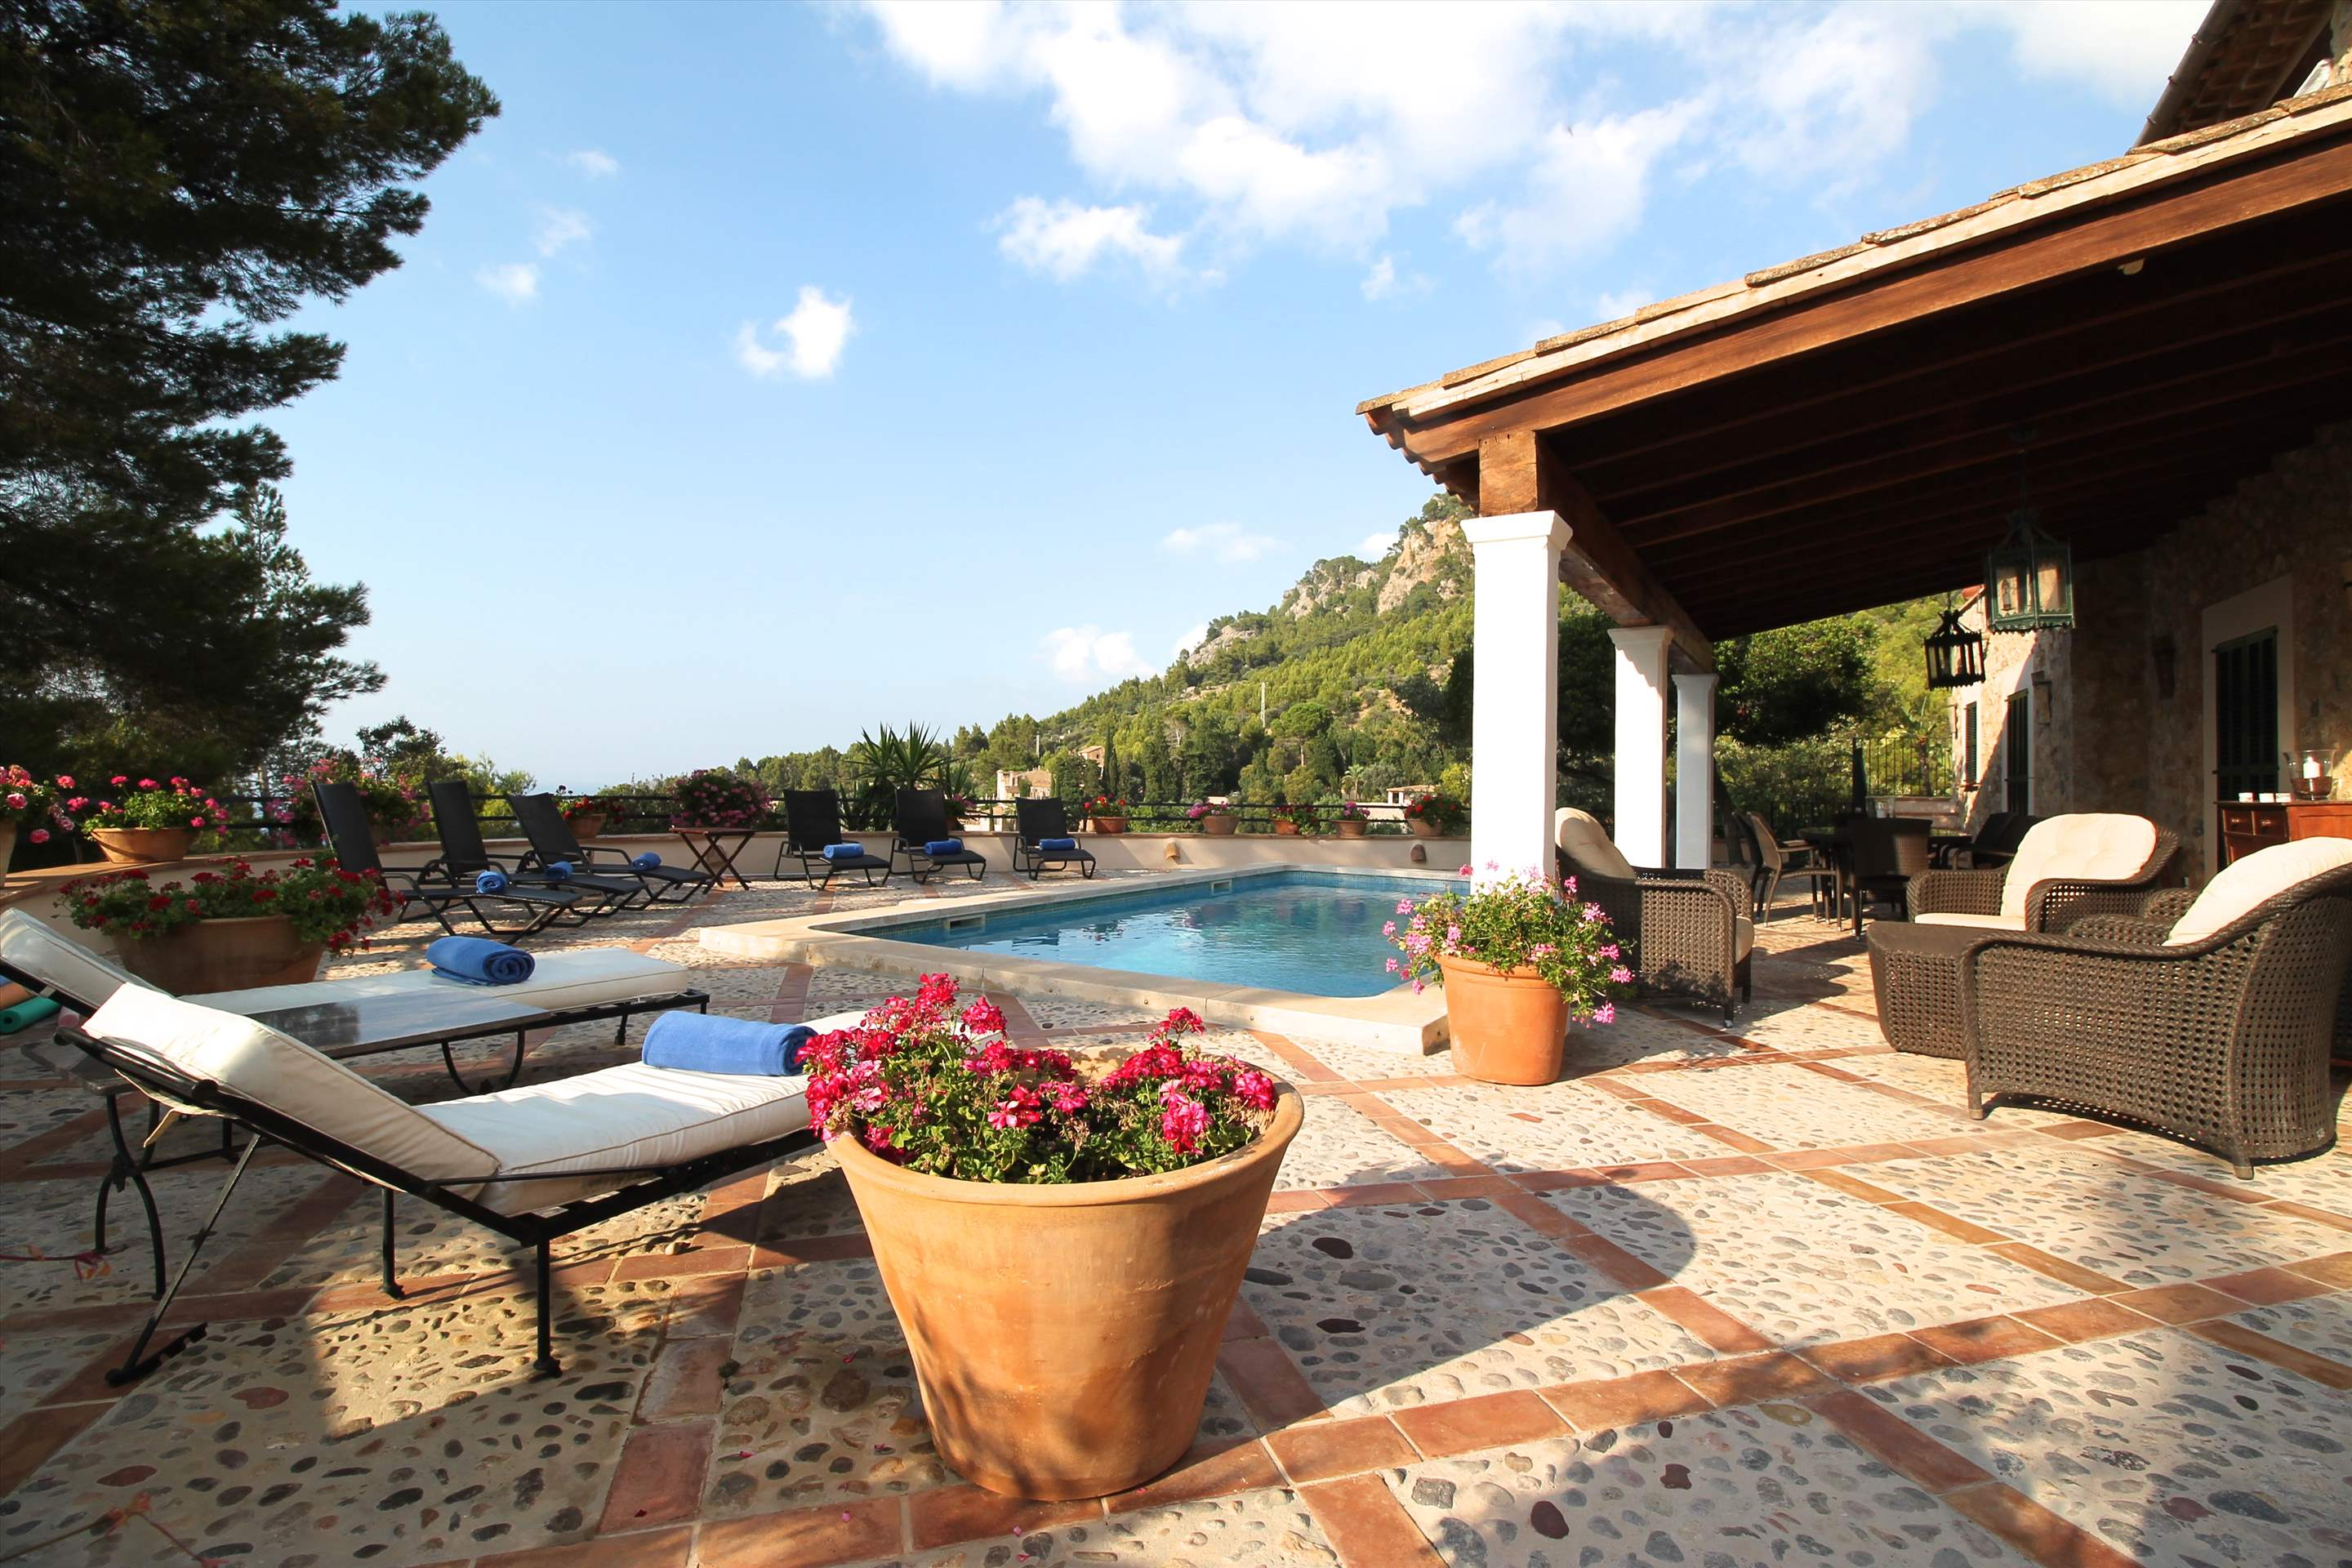 Can Winando, 4 Bedroom Rental, 4 bedroom villa in Soller & Deia, Majorca Photo #15